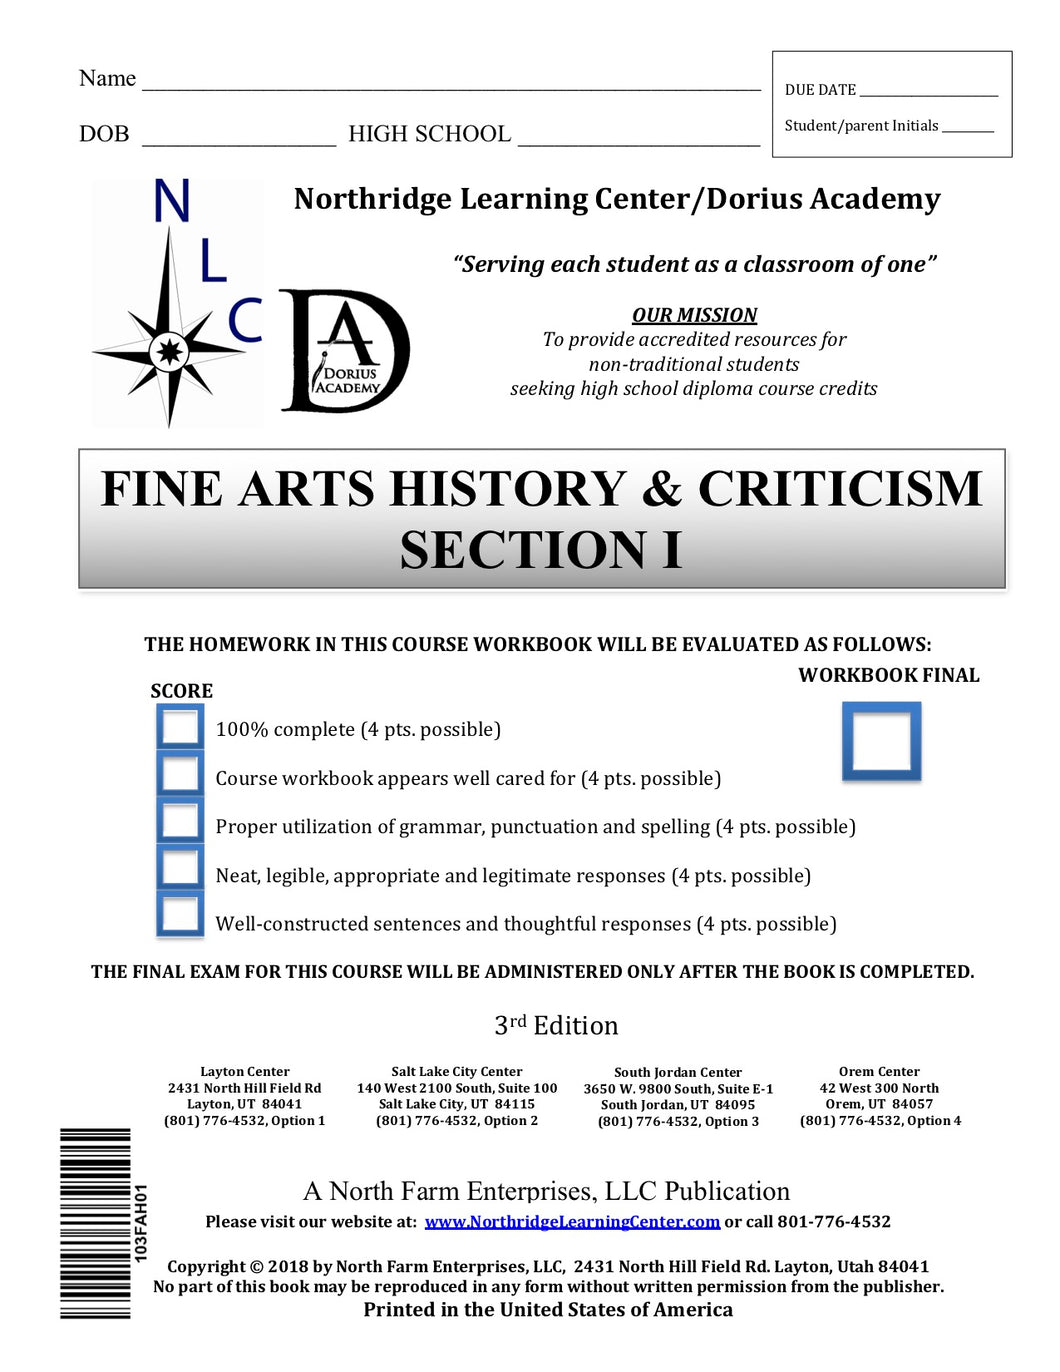 Fine Arts History & Criticism, Section I